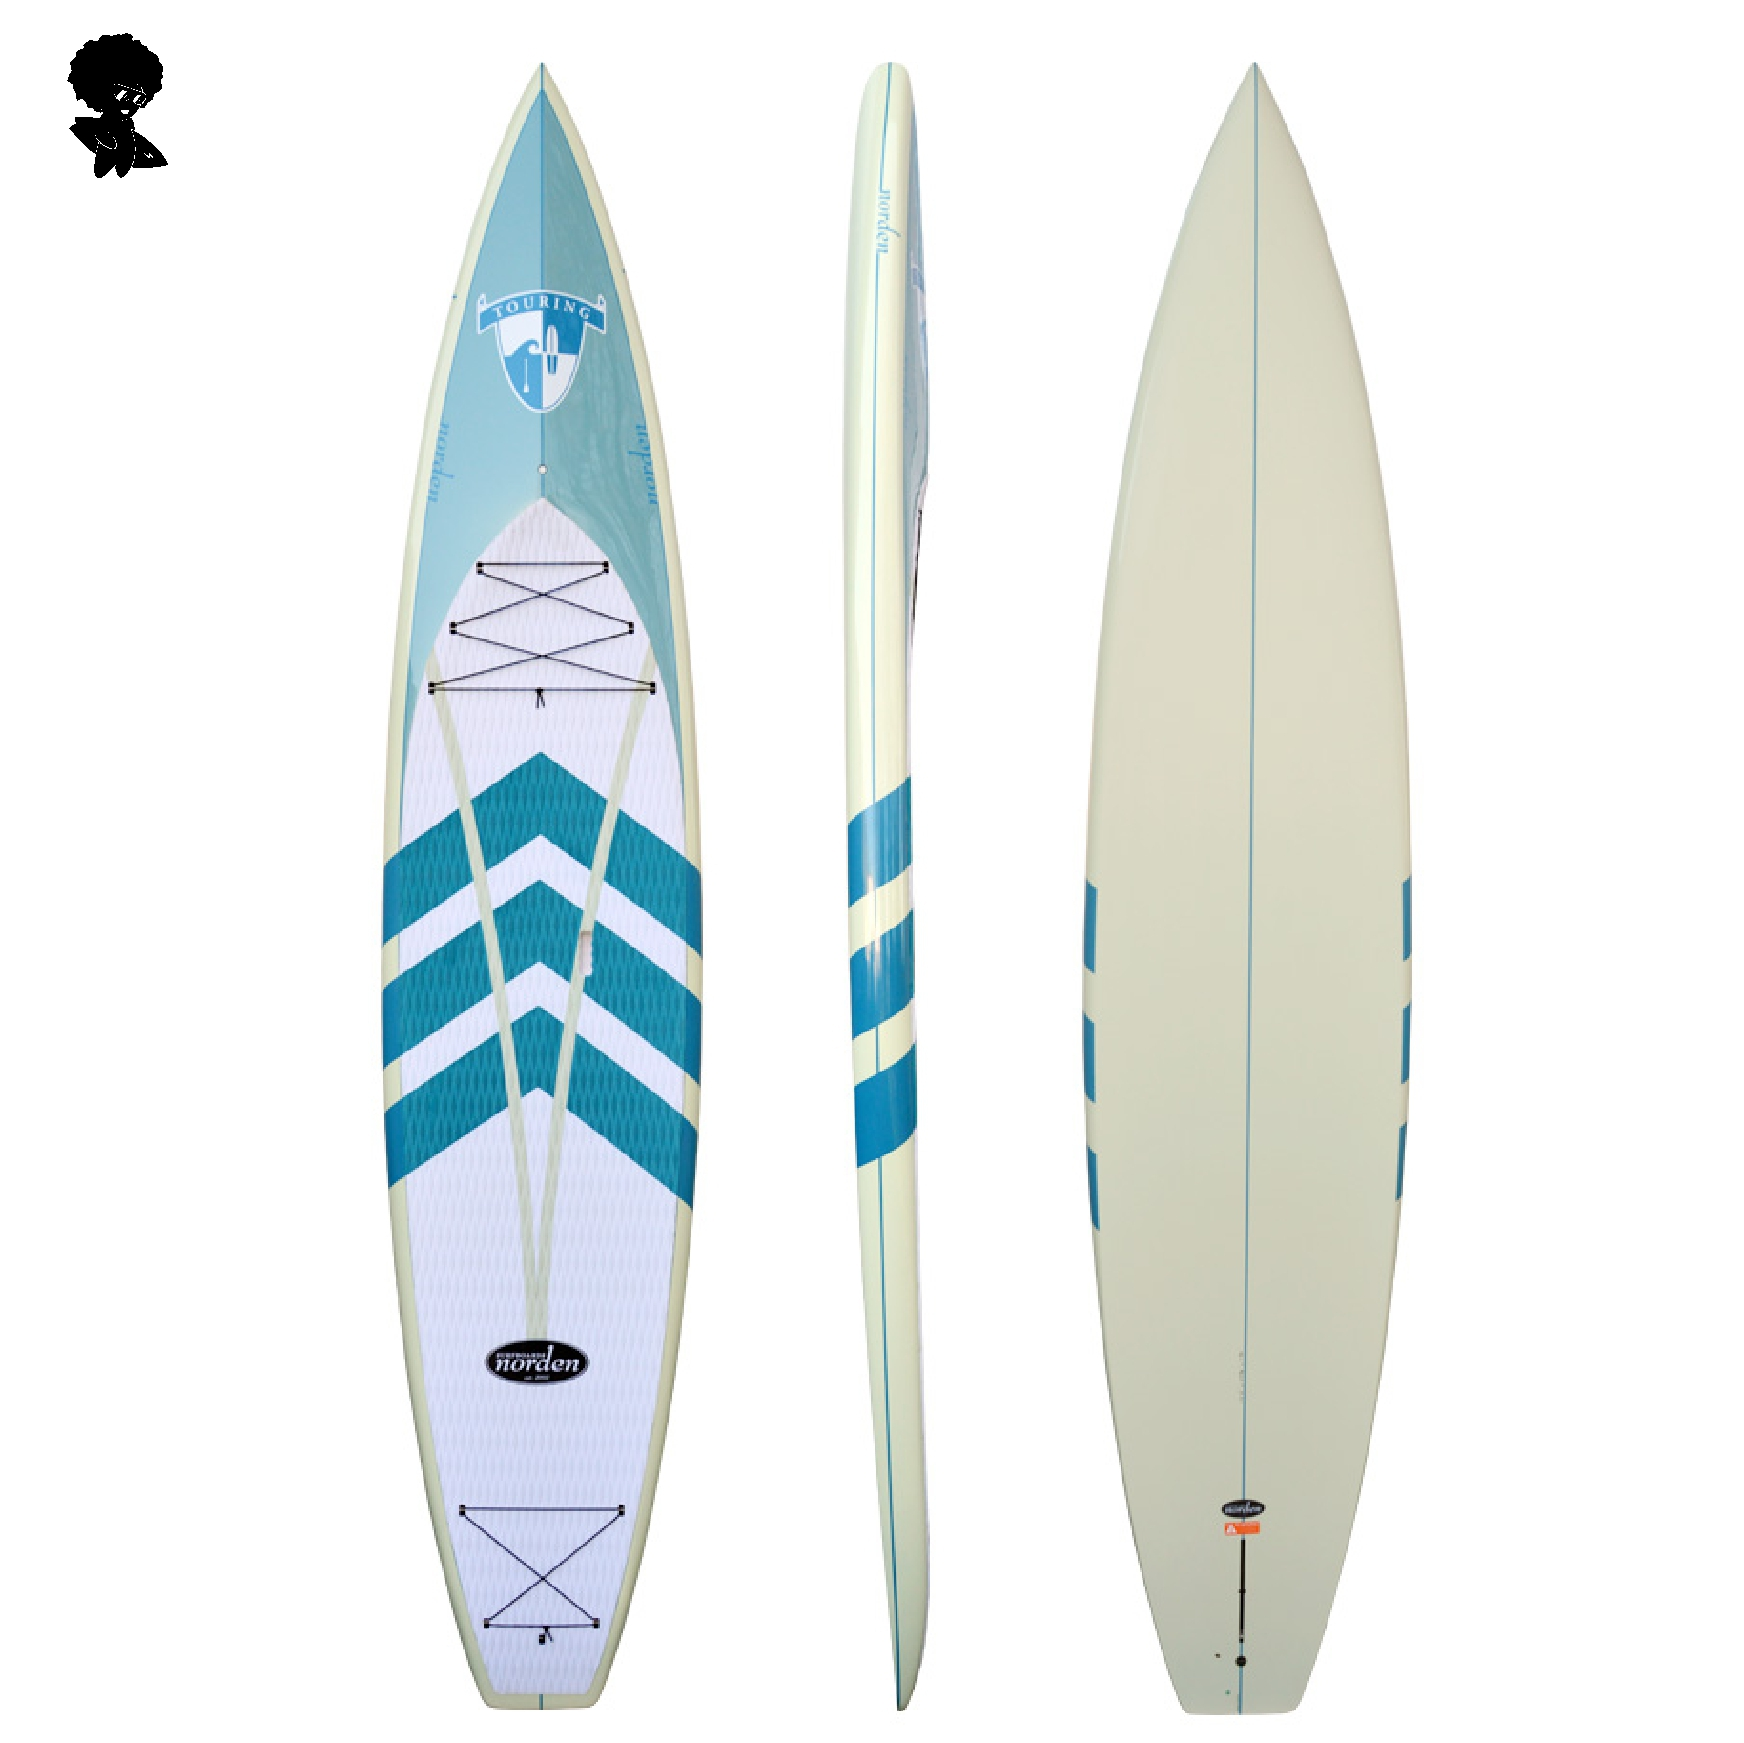 Norden Surfboards Touring SUP